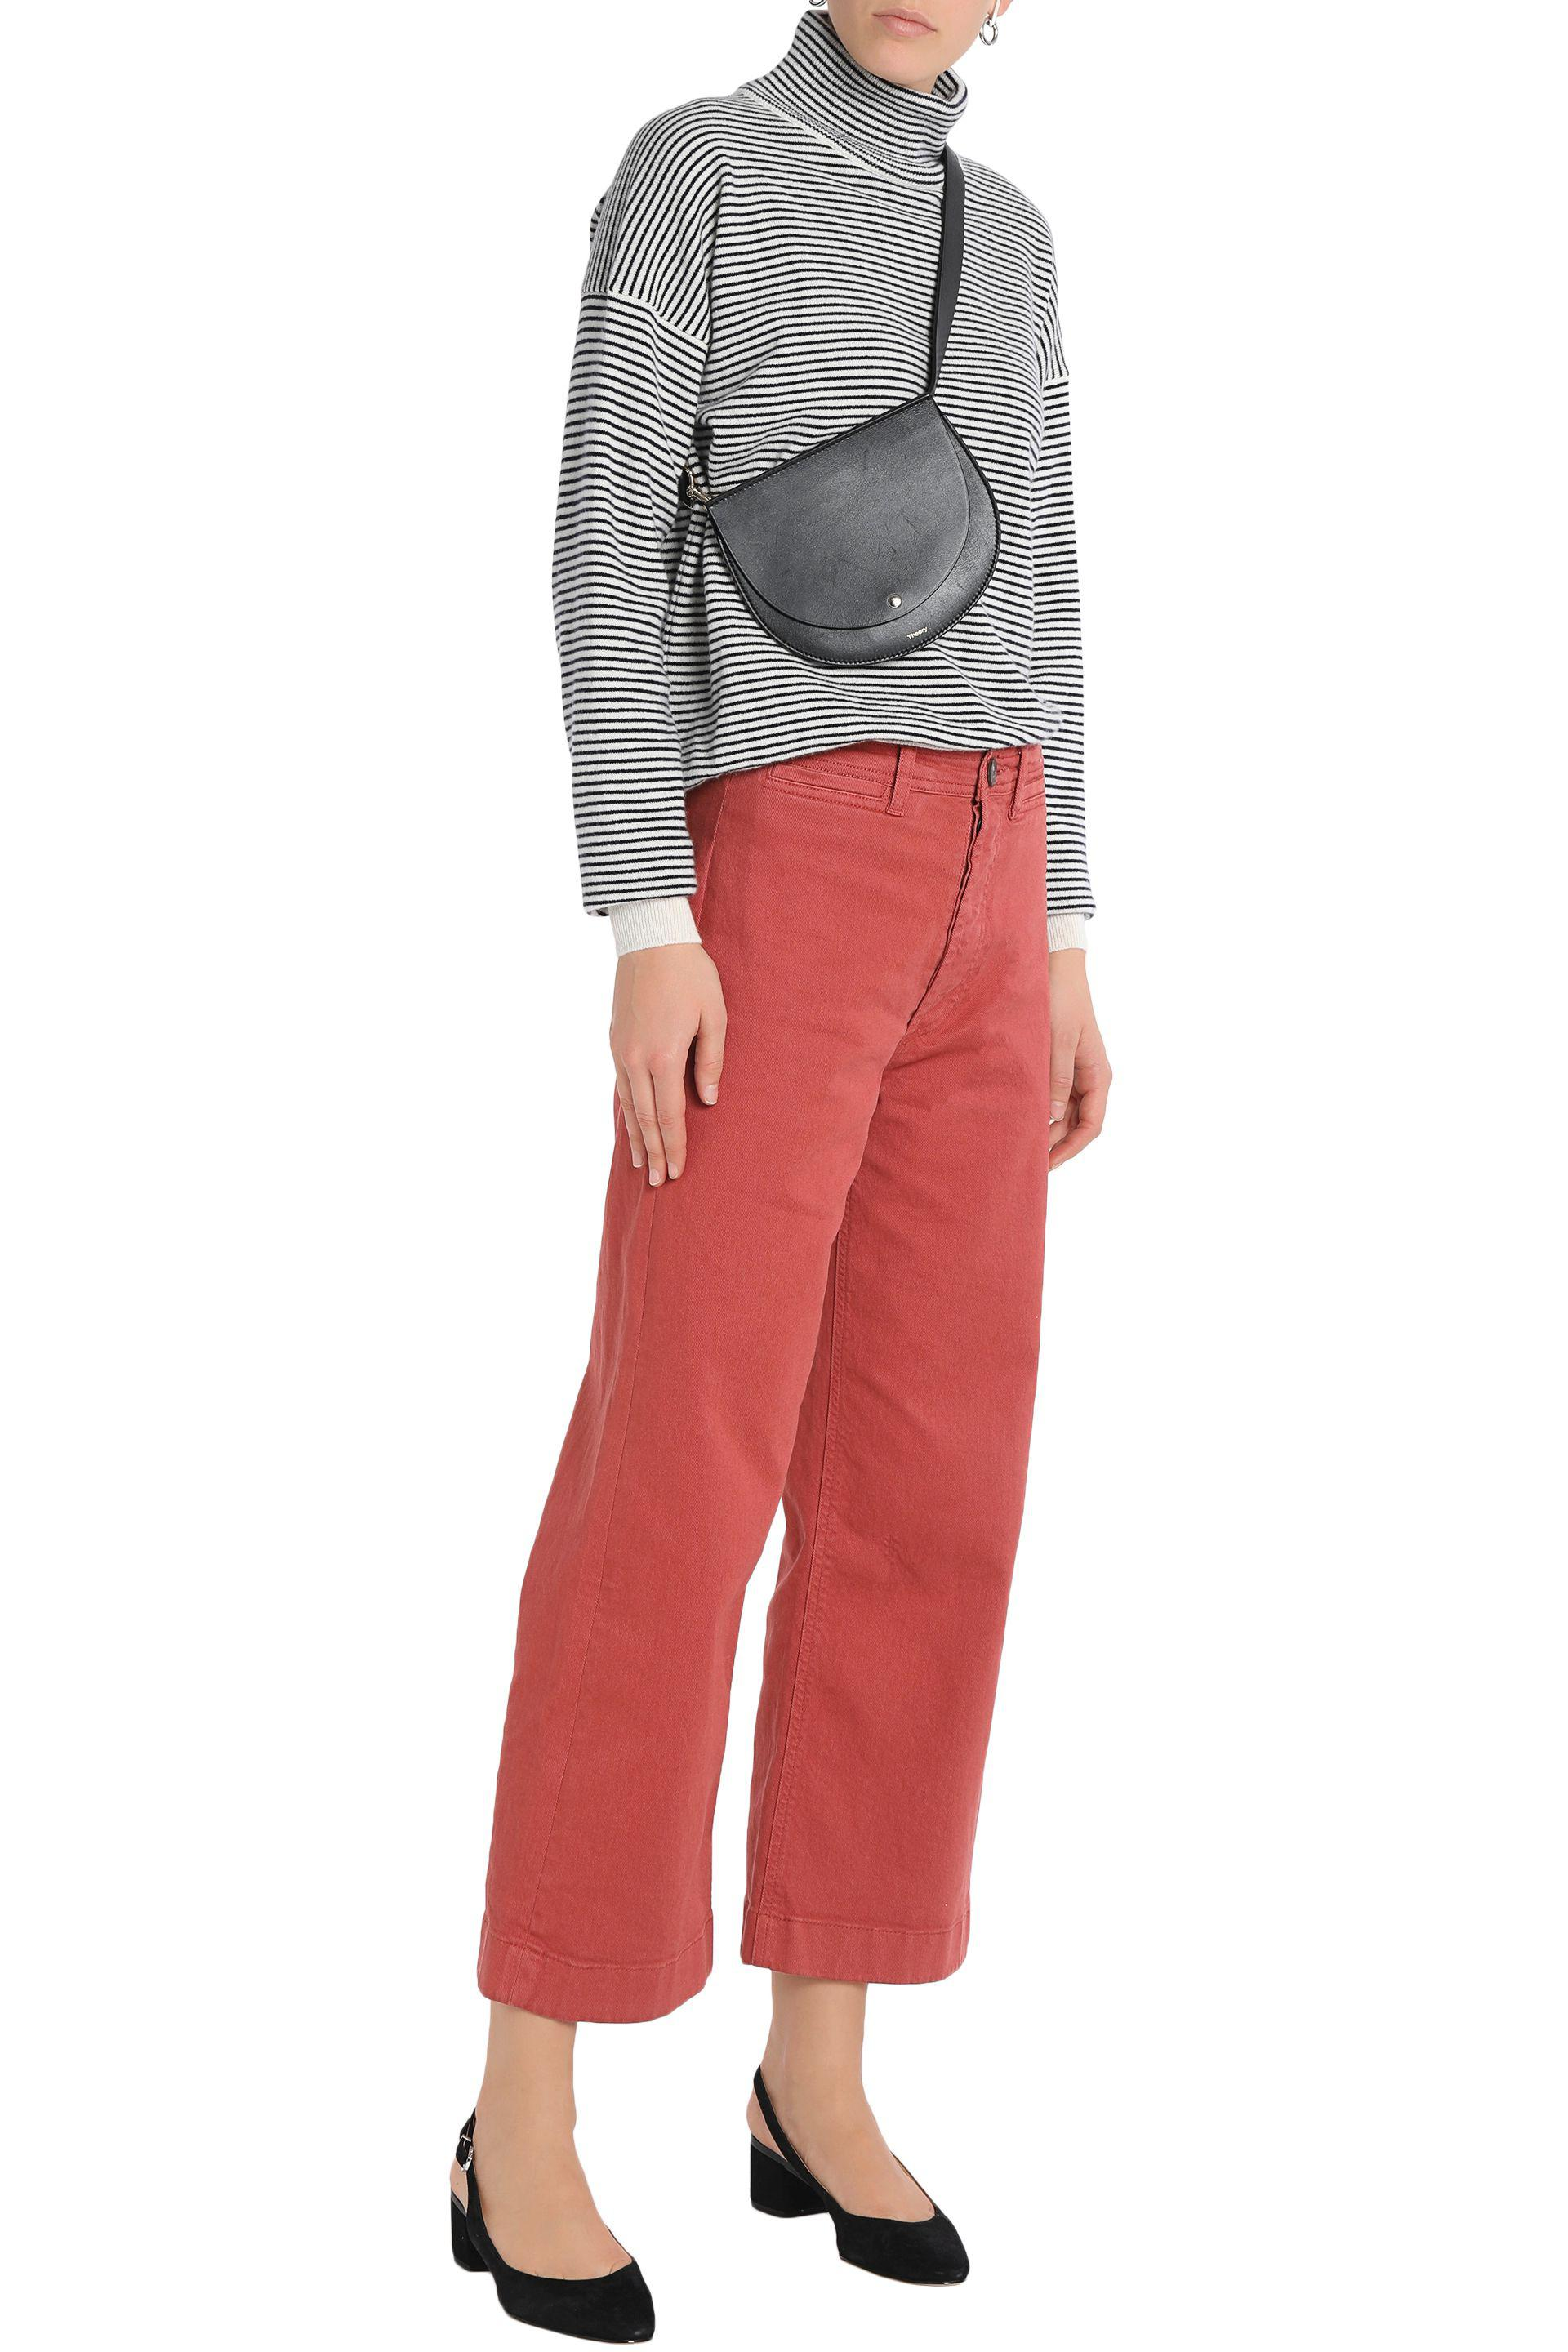 M.i.h Jeans Denim Cropped High-rise Wide-leg Jeans in Brick (Red)